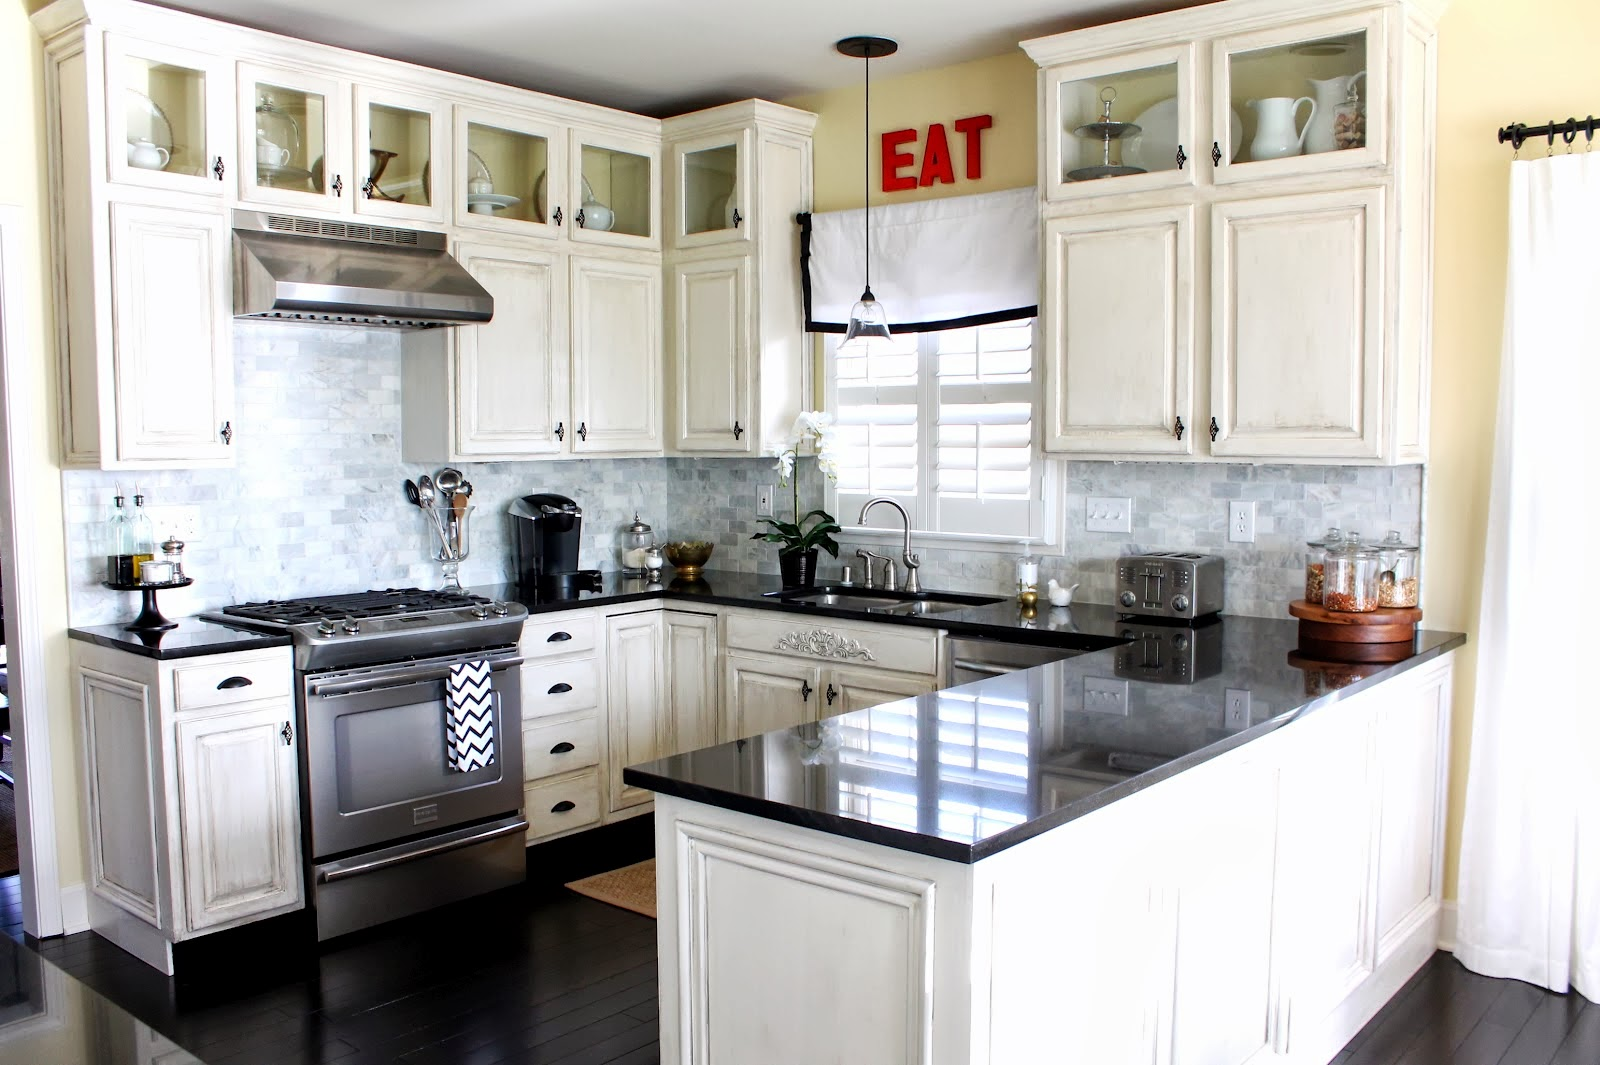 Reflective Granite Countertop and White Kitchen Cabinets in Small Open Kitchen with Classic Sink